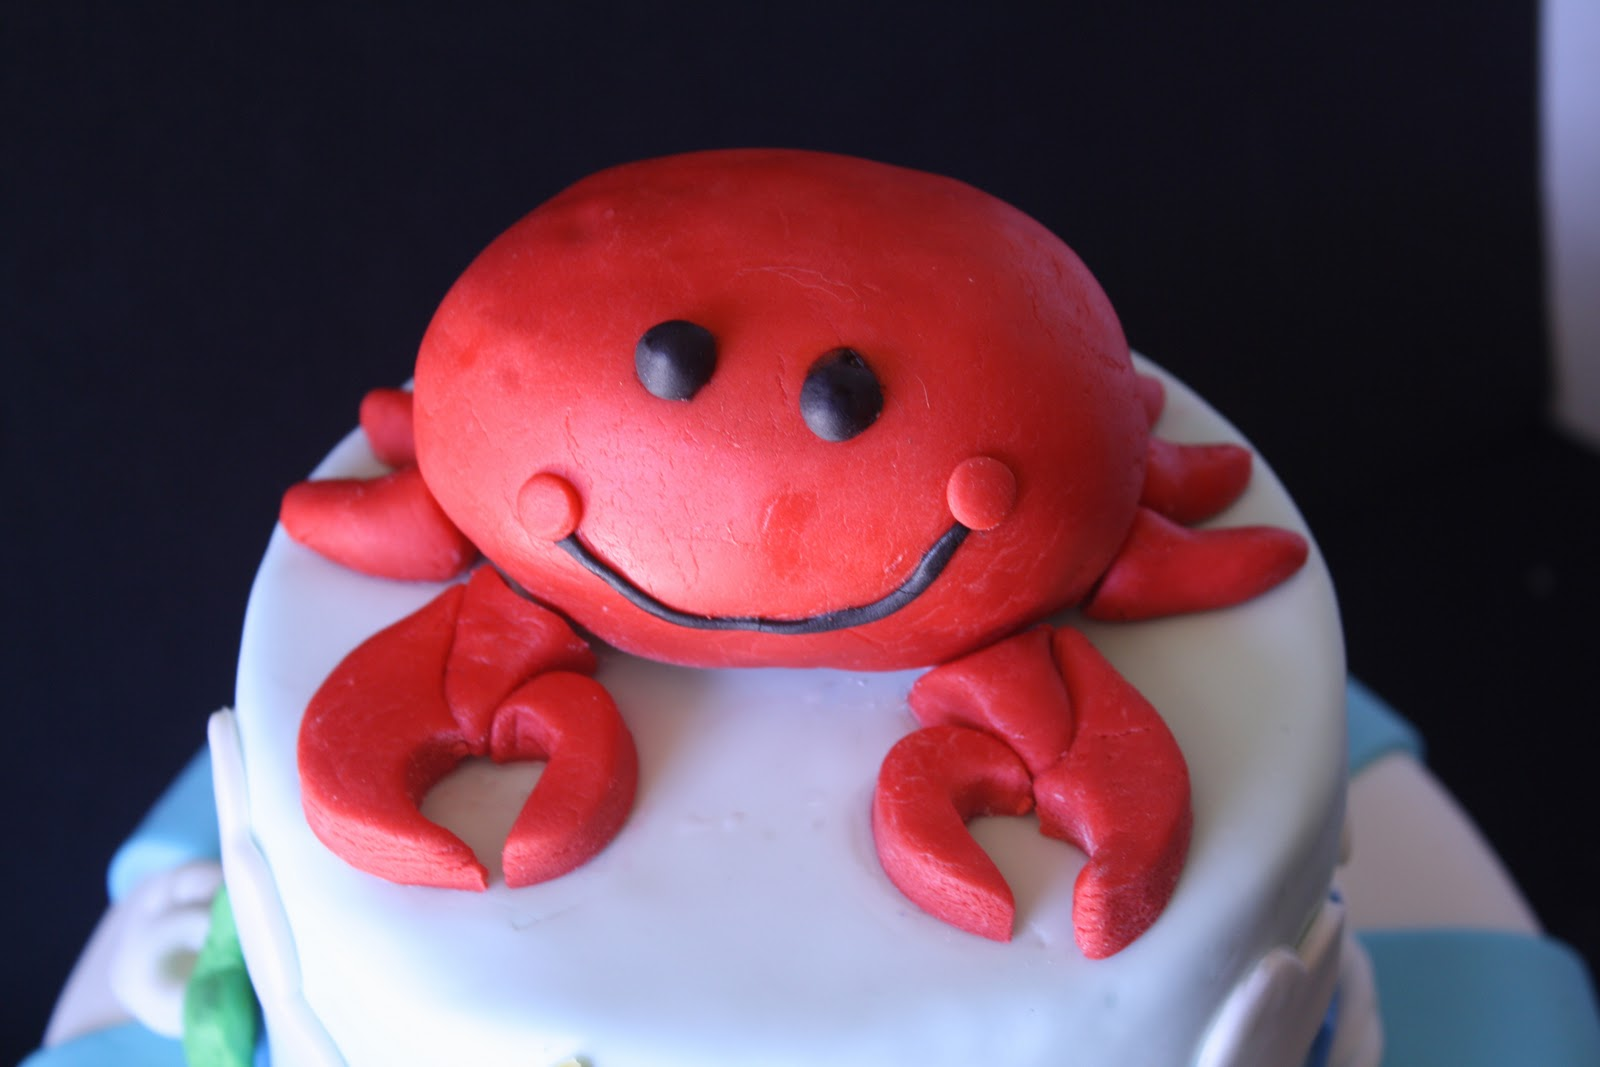 Astonishing Anchors Aweigh Nautical Theme Cake With A Crab On Top Funny Birthday Cards Online Necthendildamsfinfo